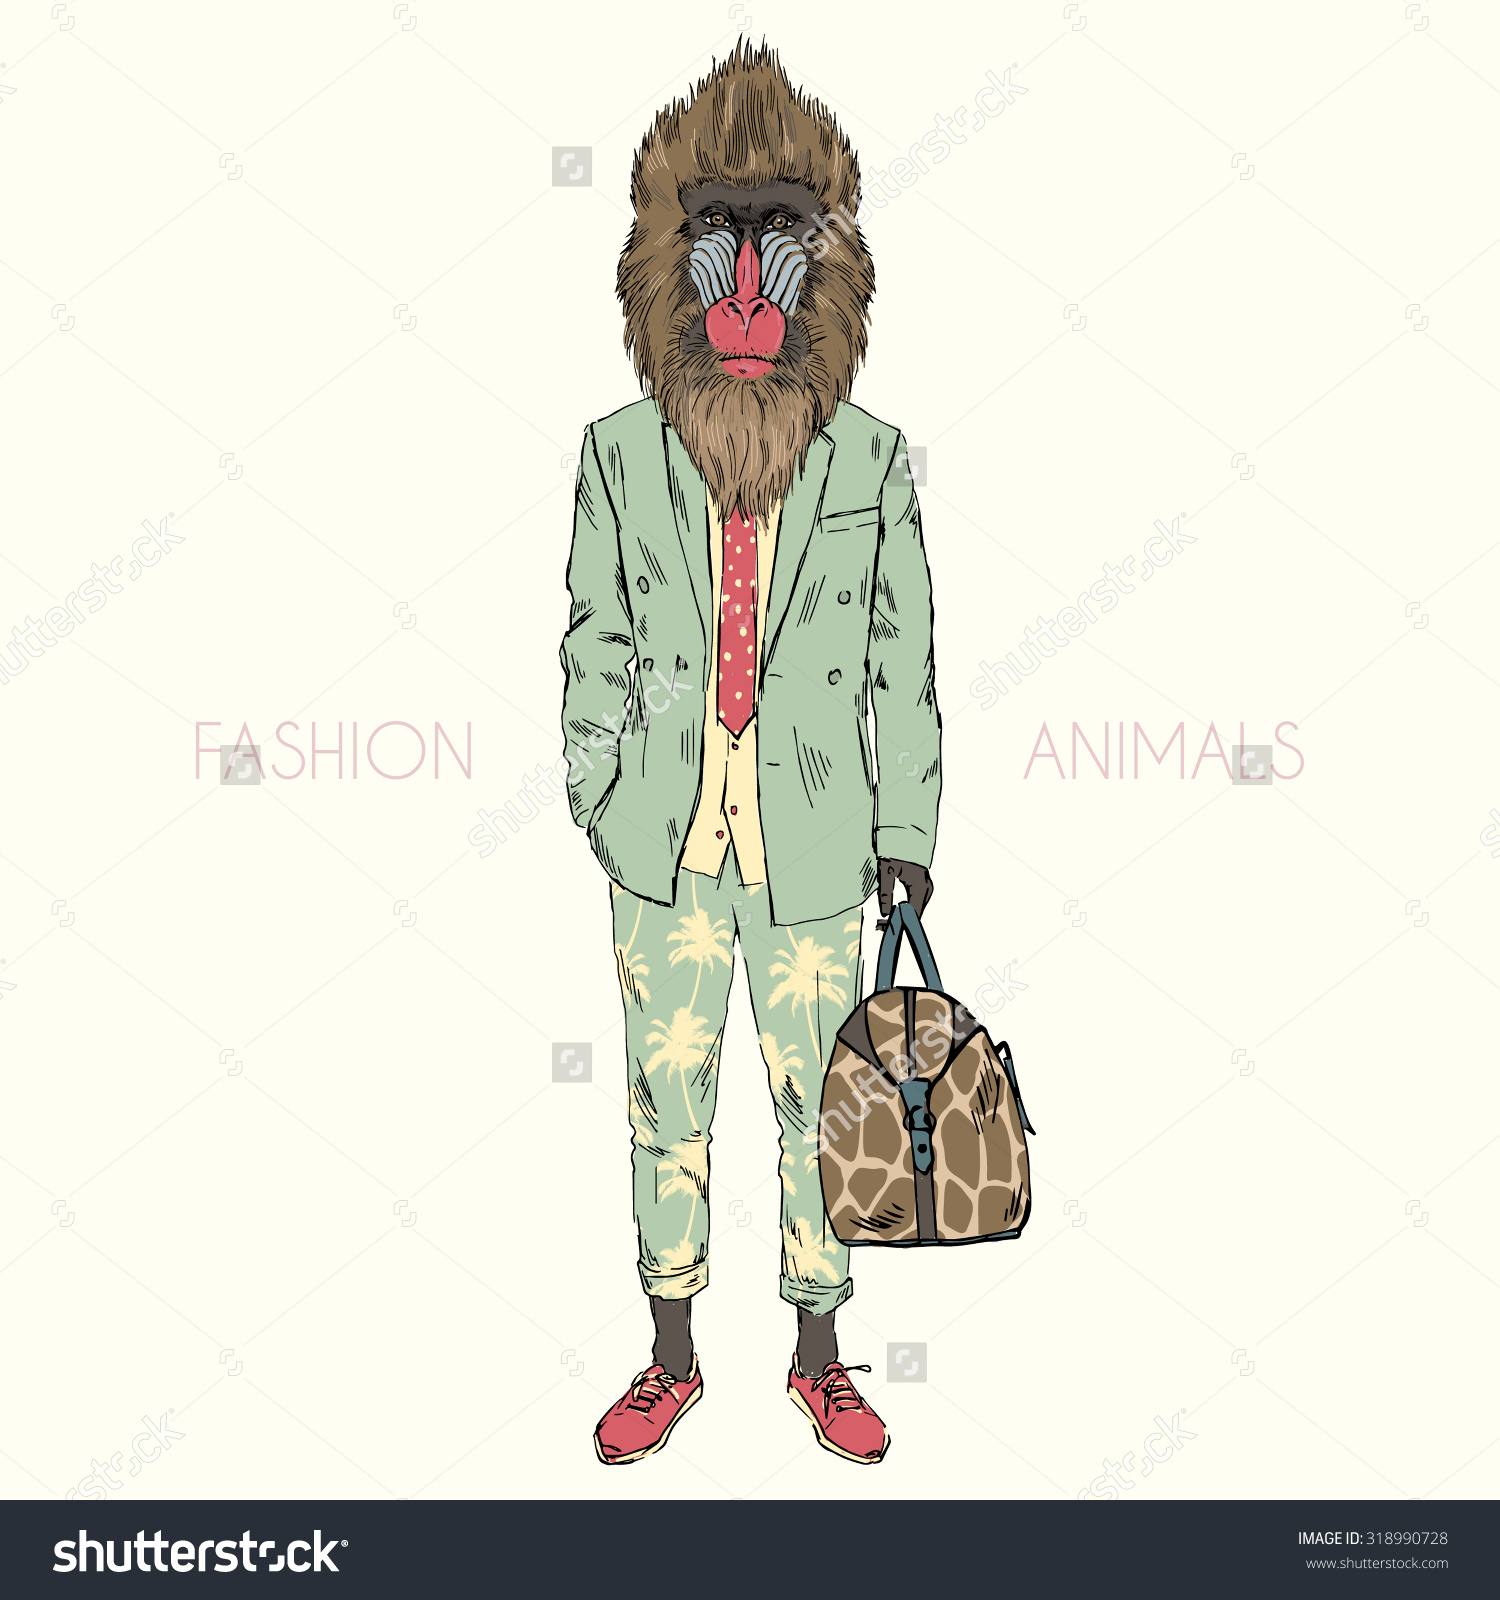 Mandrillus Sphinx Monkey Dressed Cool Urban Stock Vector 318990728.